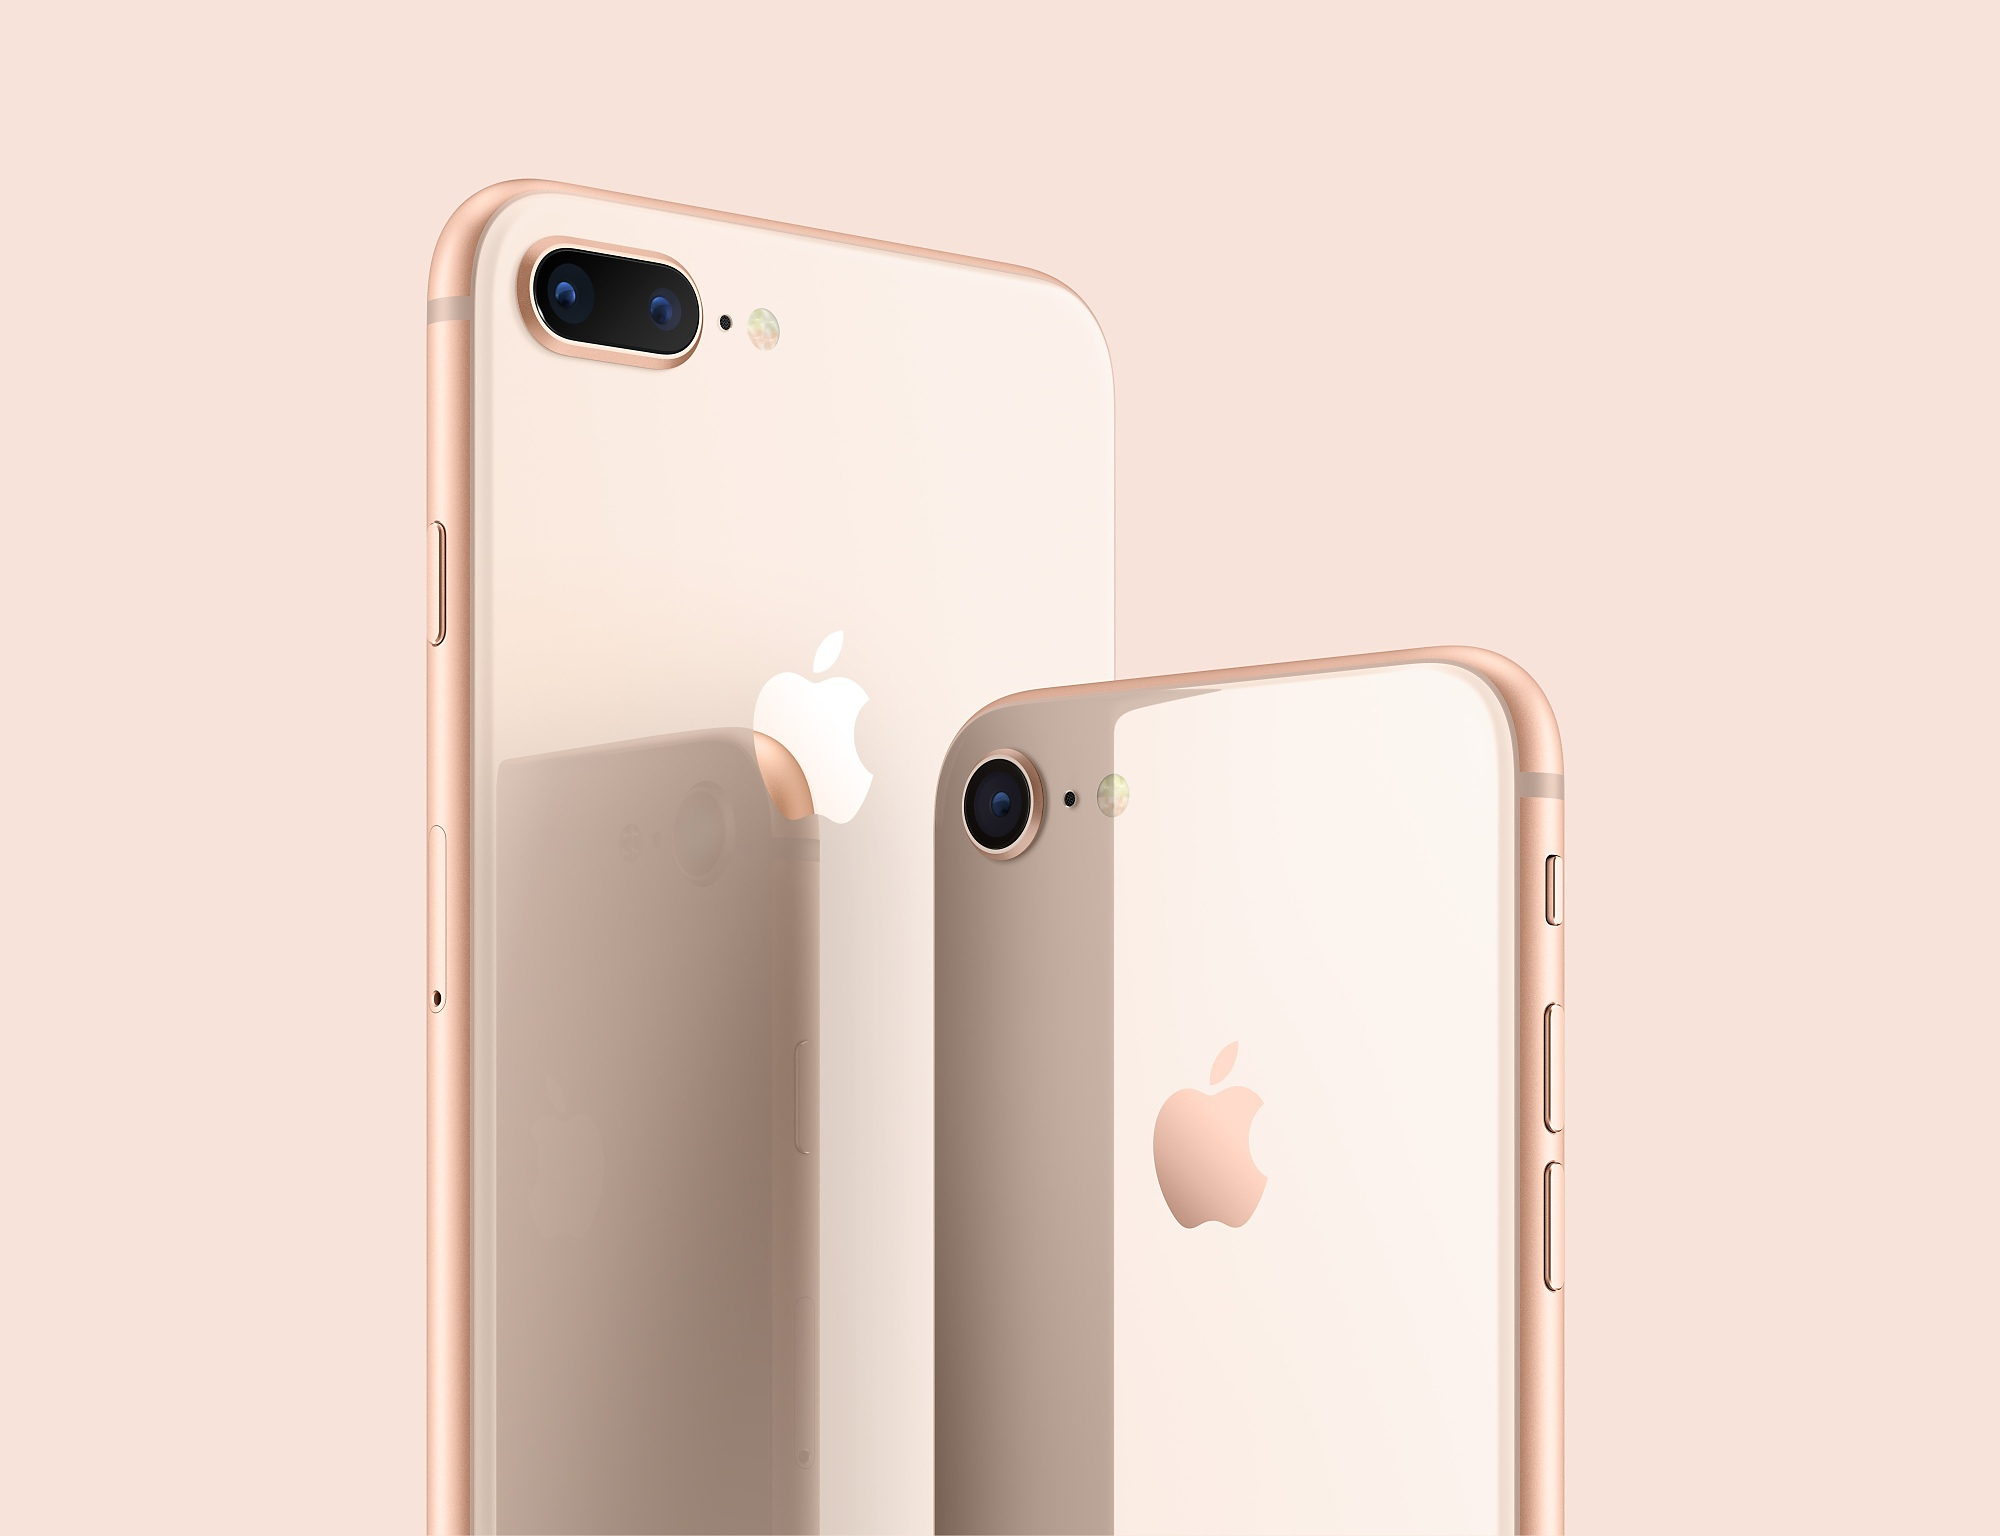 Qantas loyalty rewards amp loyalty programs australia - Is The Iphone 8 A Stunning New Phone Or A Glorified Update